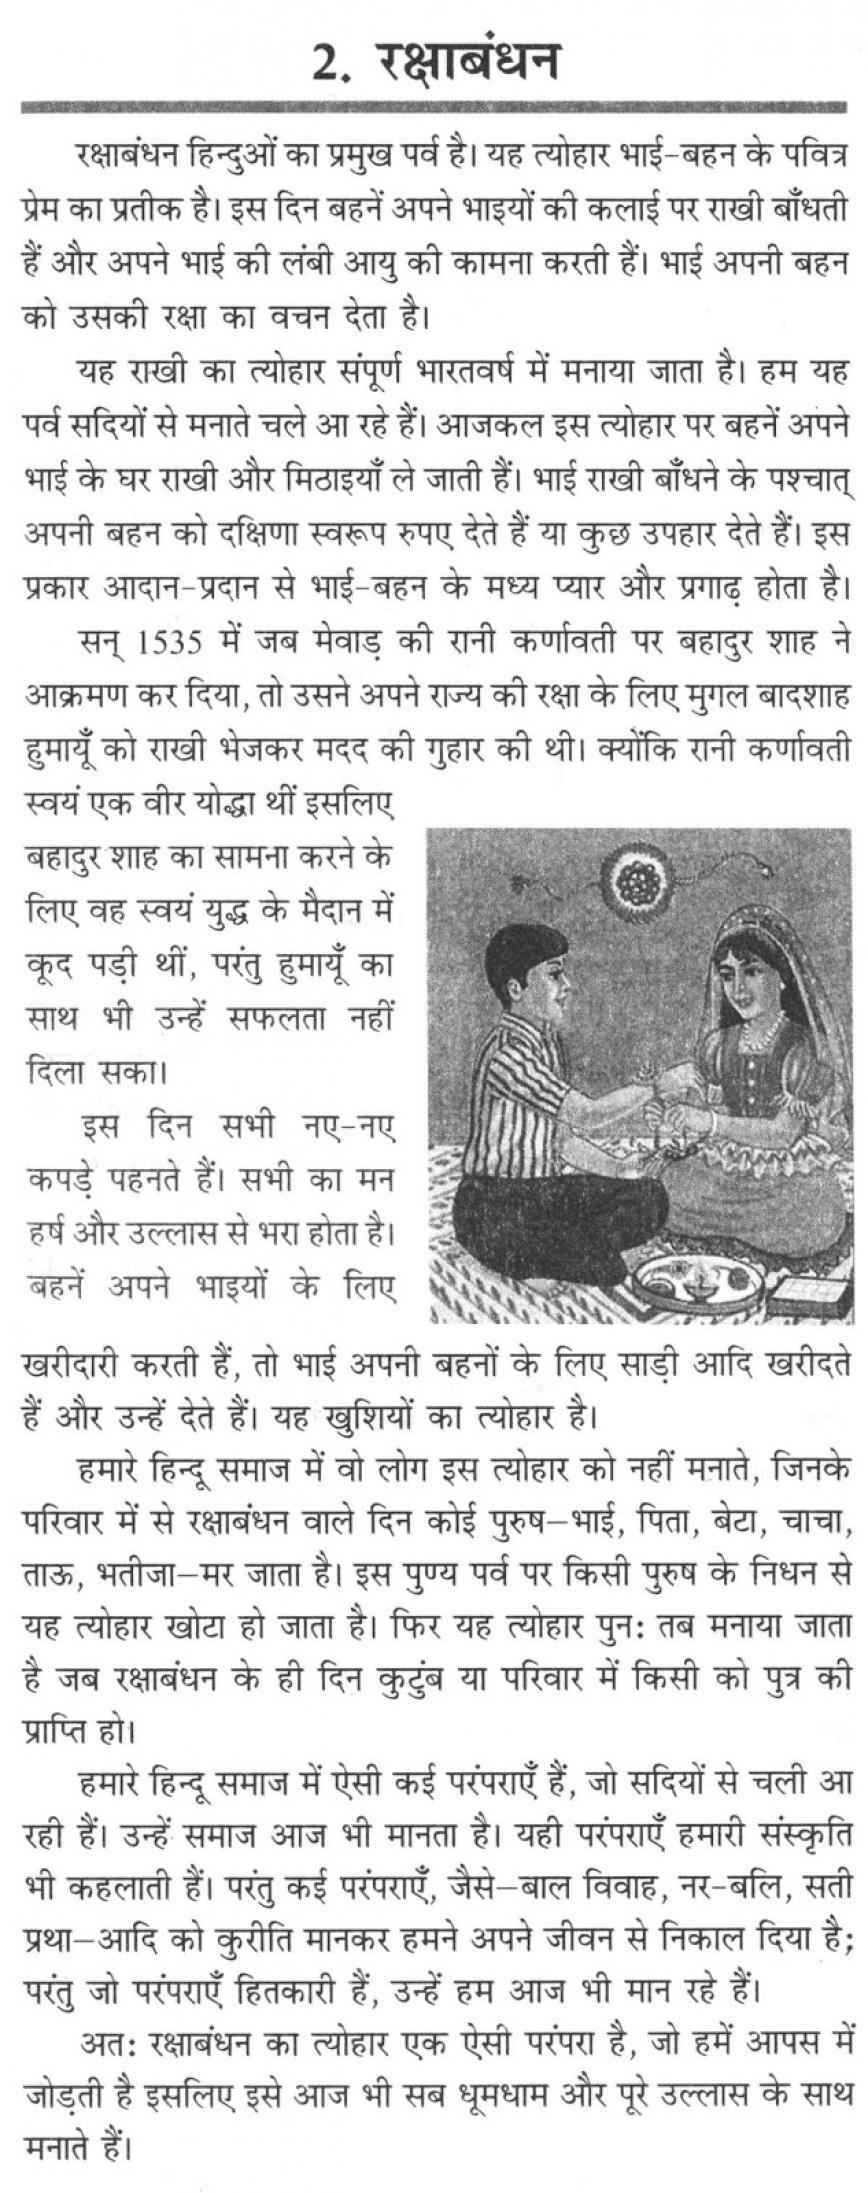 015 Raksha20bandhan20essay20in20hindi202016 Essay Example Good Habits In Exceptional Hindi Food Habit 868